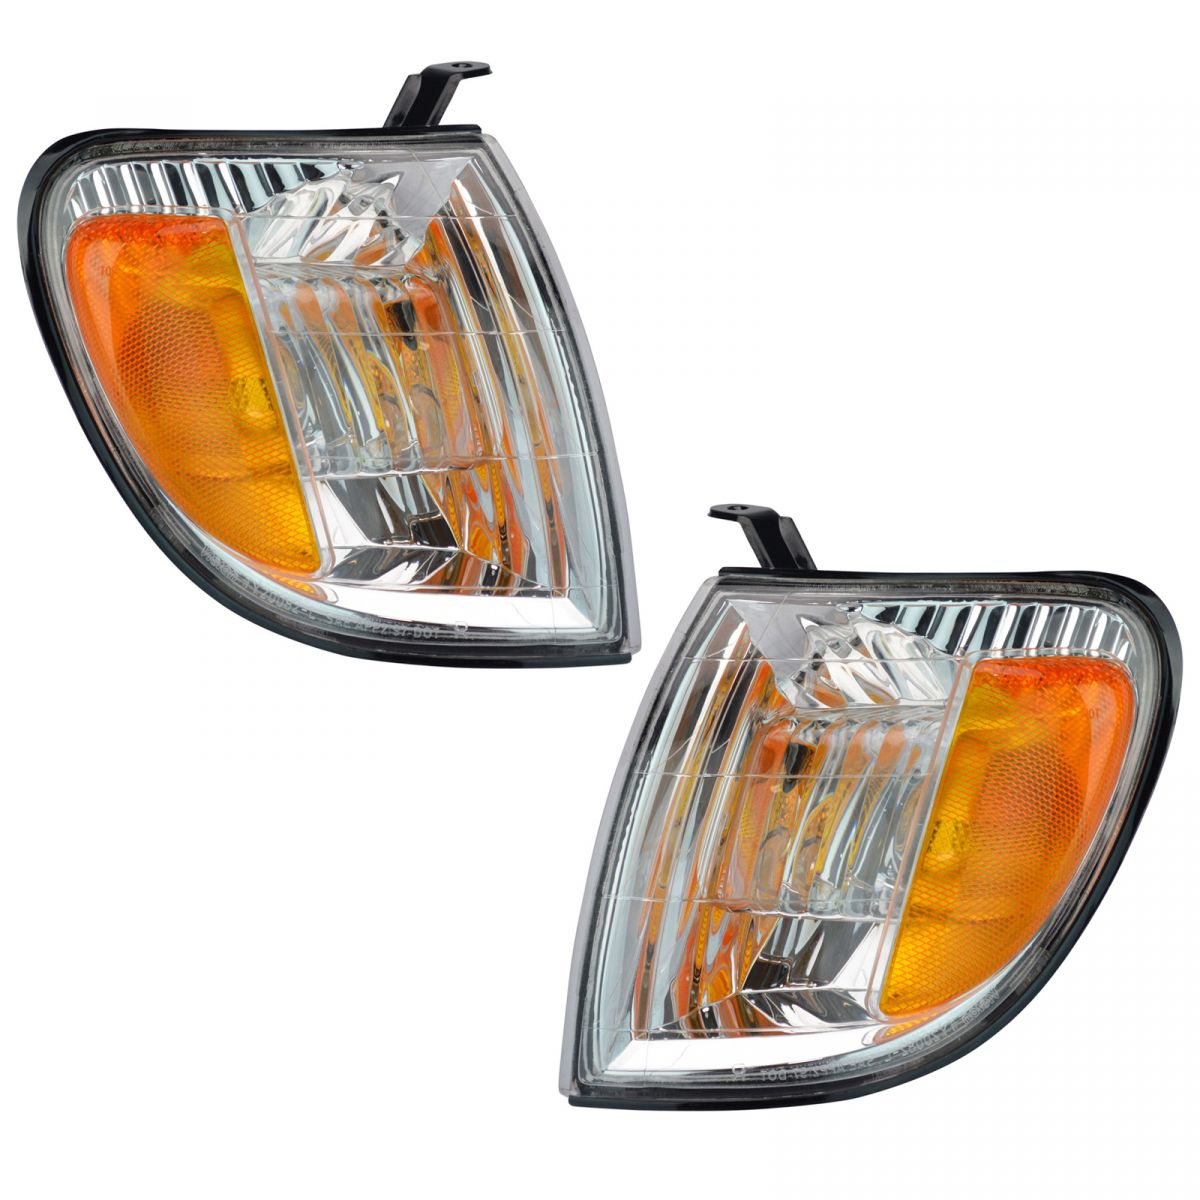 Toyota Tundra Regular//Access Replacement Corner Light Assembly 1-Pair